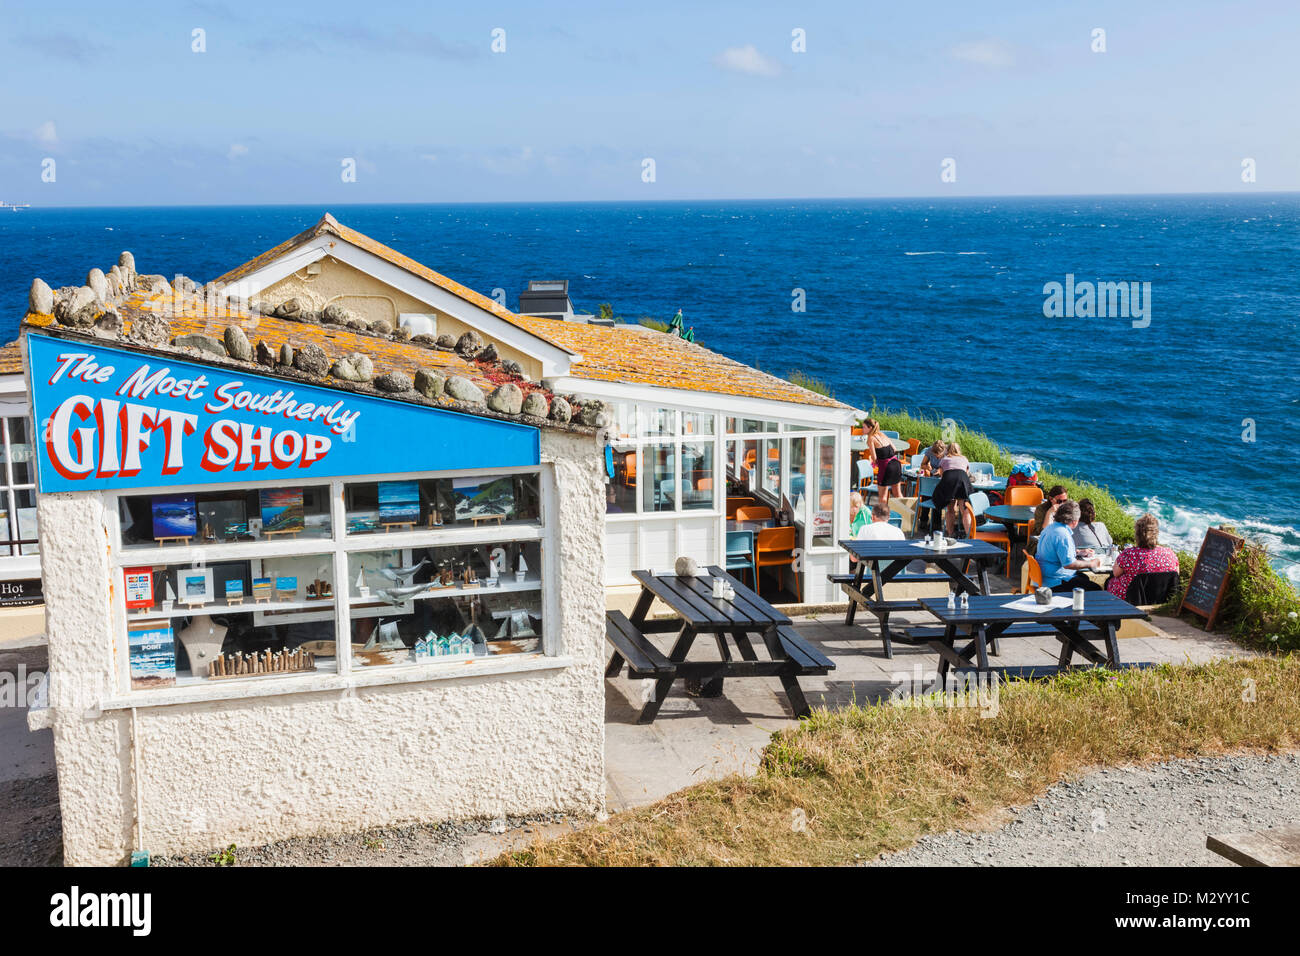 England, Cornwall, The Lizard, The Most Southerly Gift Shop and Cafe - Stock Image